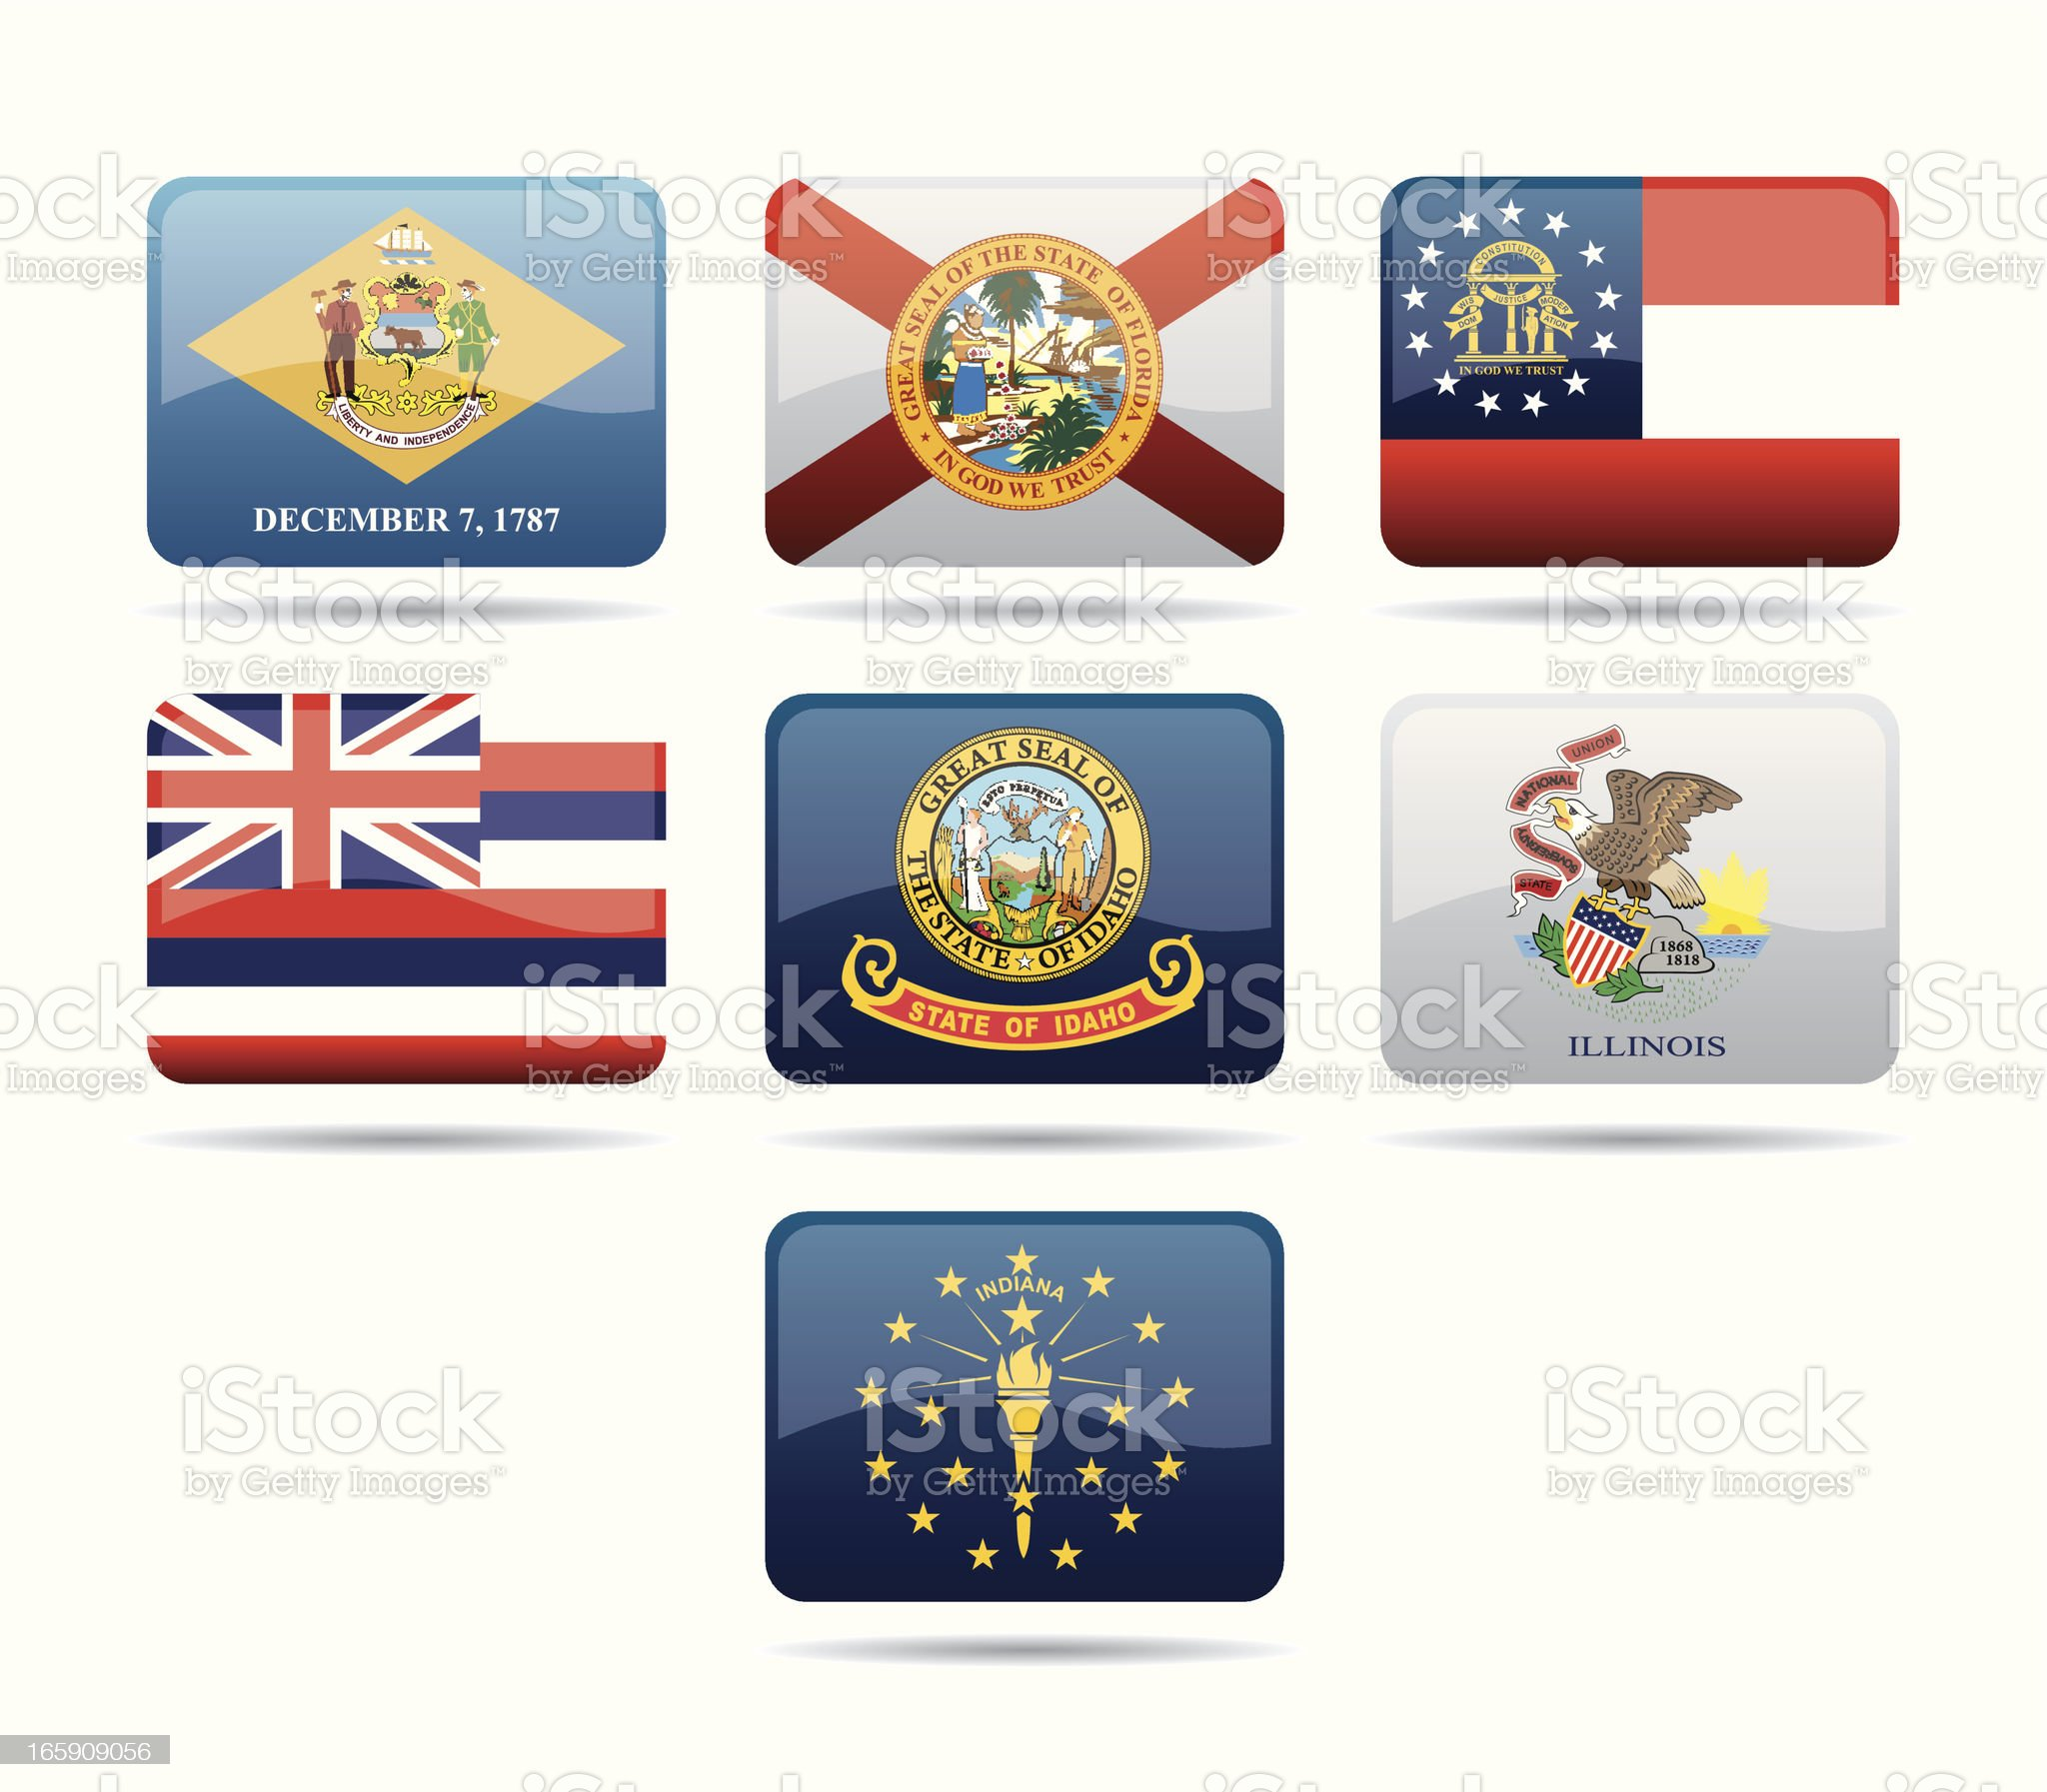 USA Flags royalty-free stock vector art